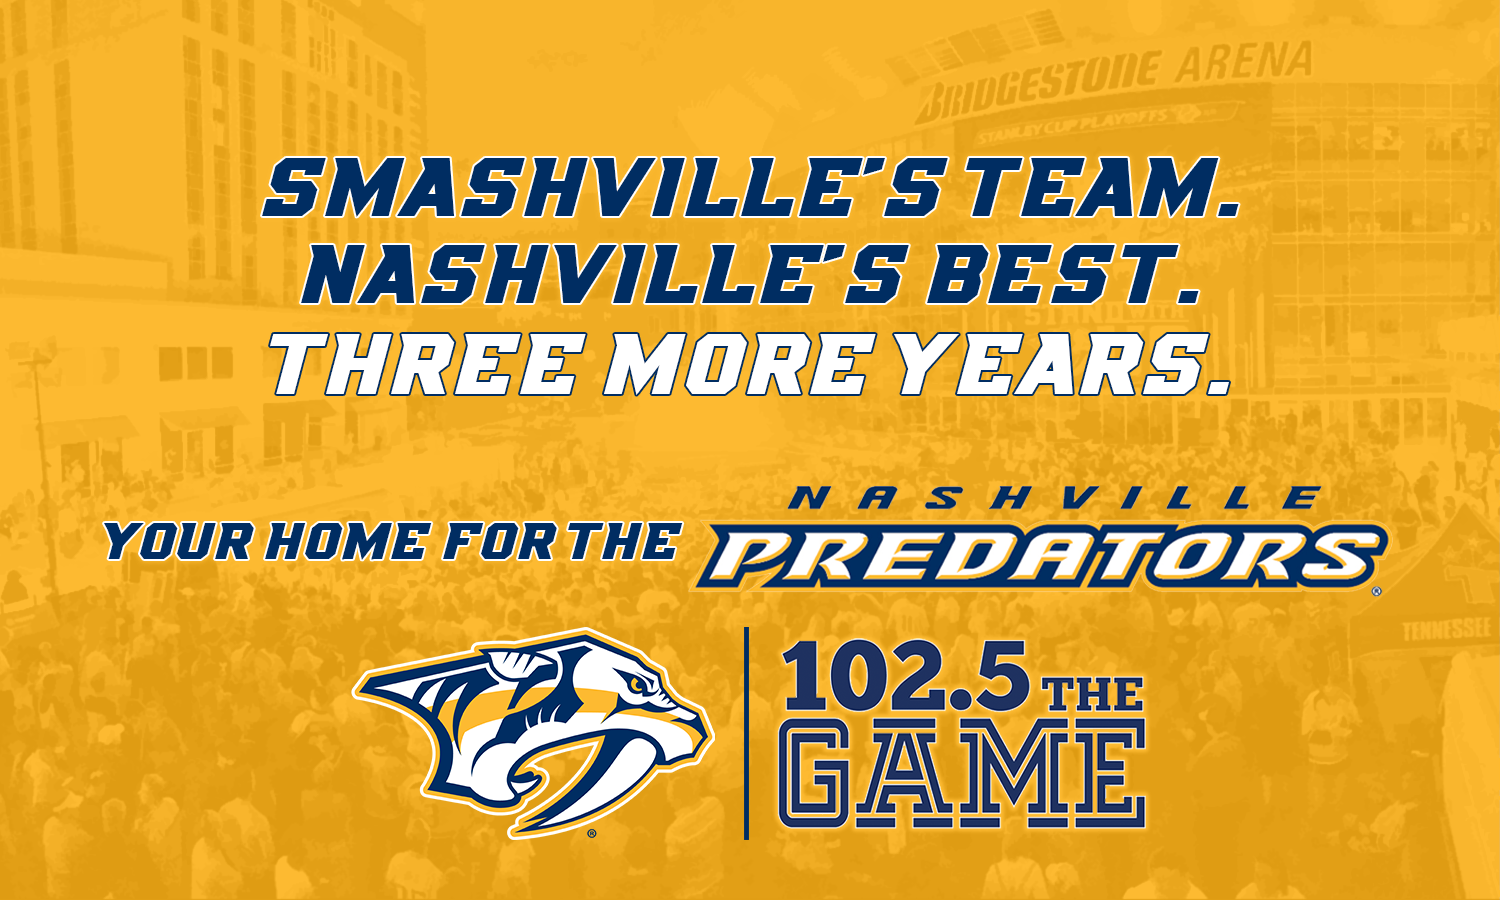 ESPN 102.5 The Game, Nashville Predators extend partnership through 2020-21 season